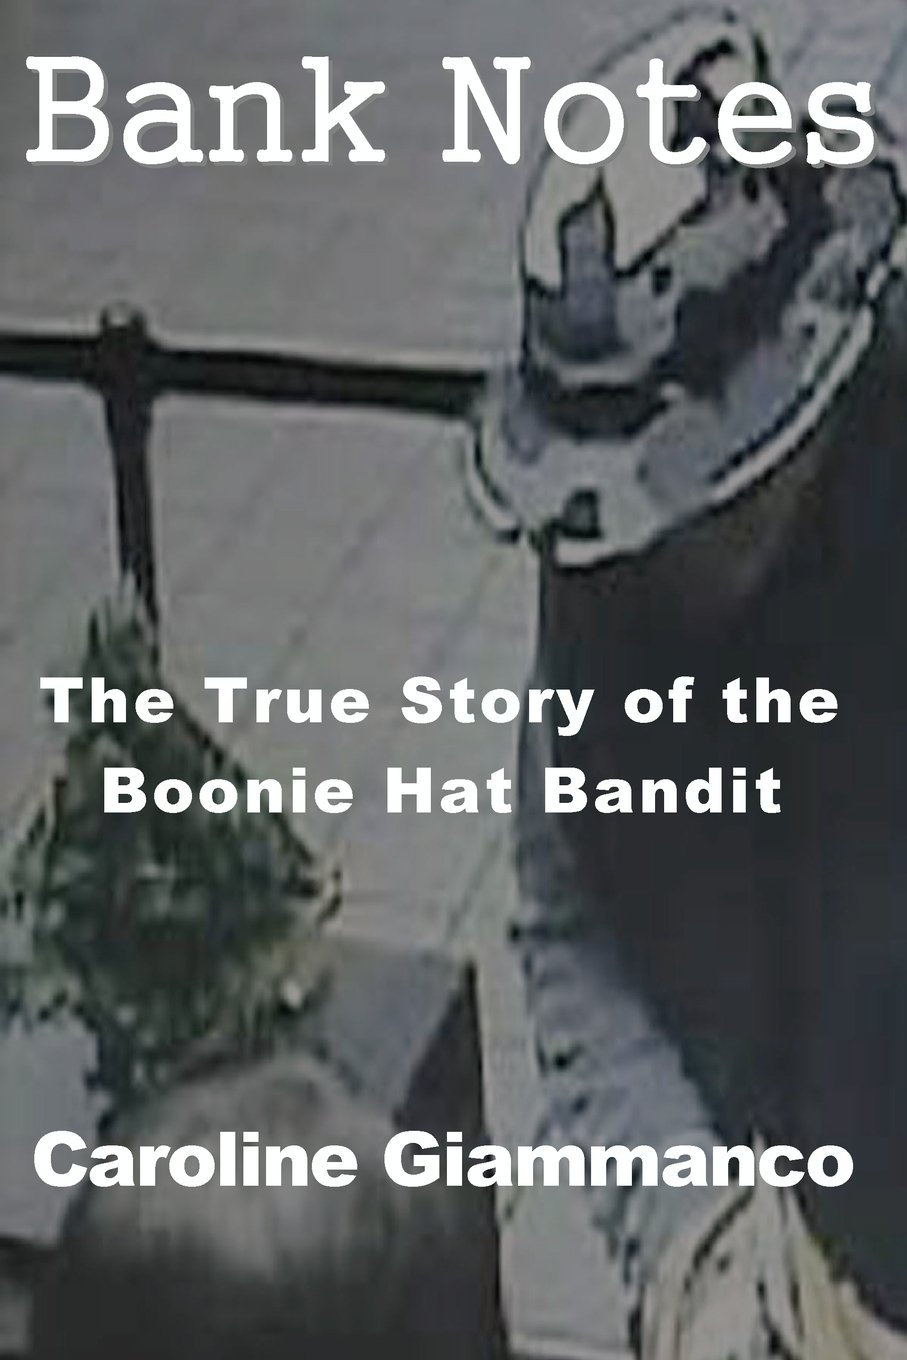 Bank Notes Story Boonie Bandit